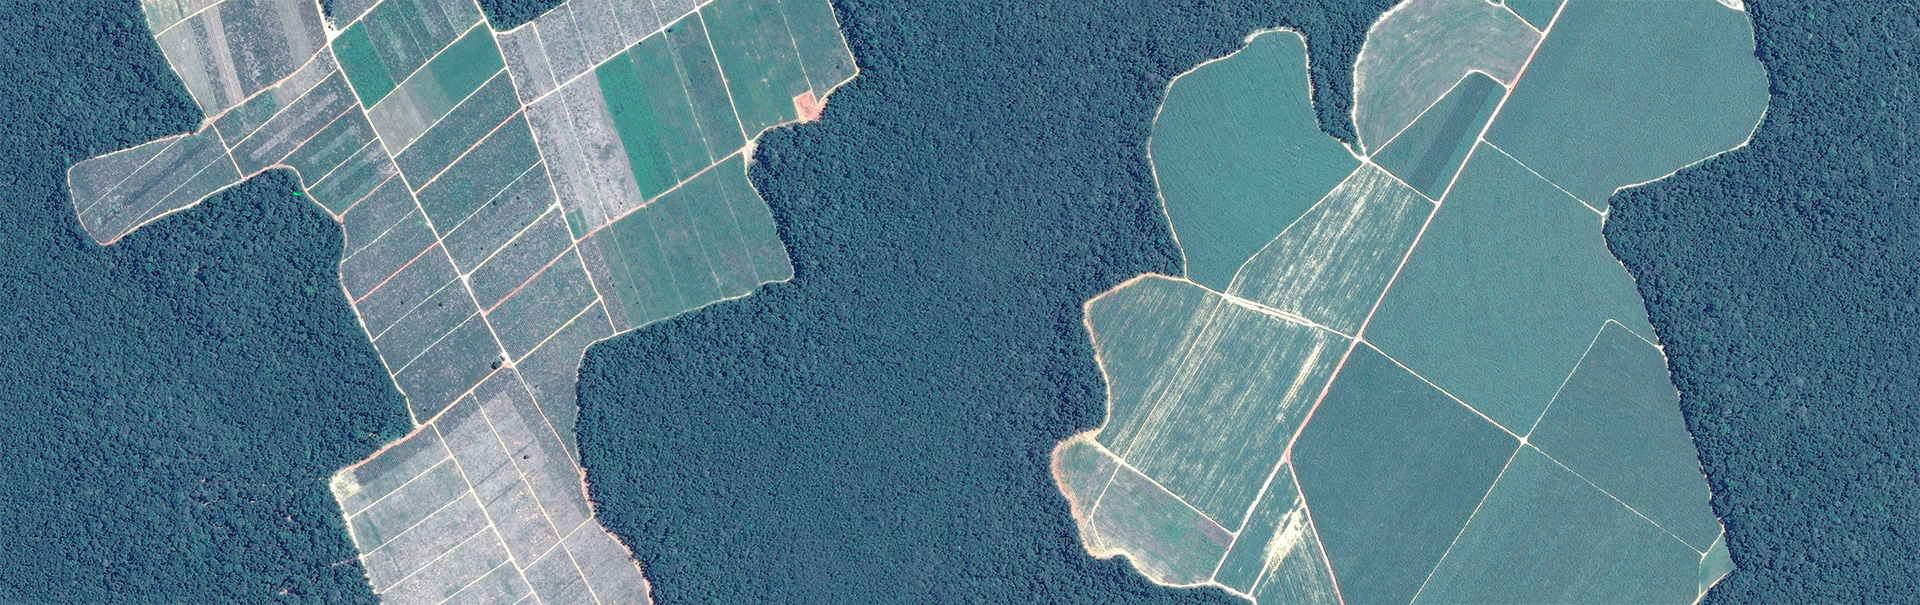 Google Earth image of deforestation for soy fields and cattle pasture north of the city of Manaus in the Brazilian Amazon in January 2020.